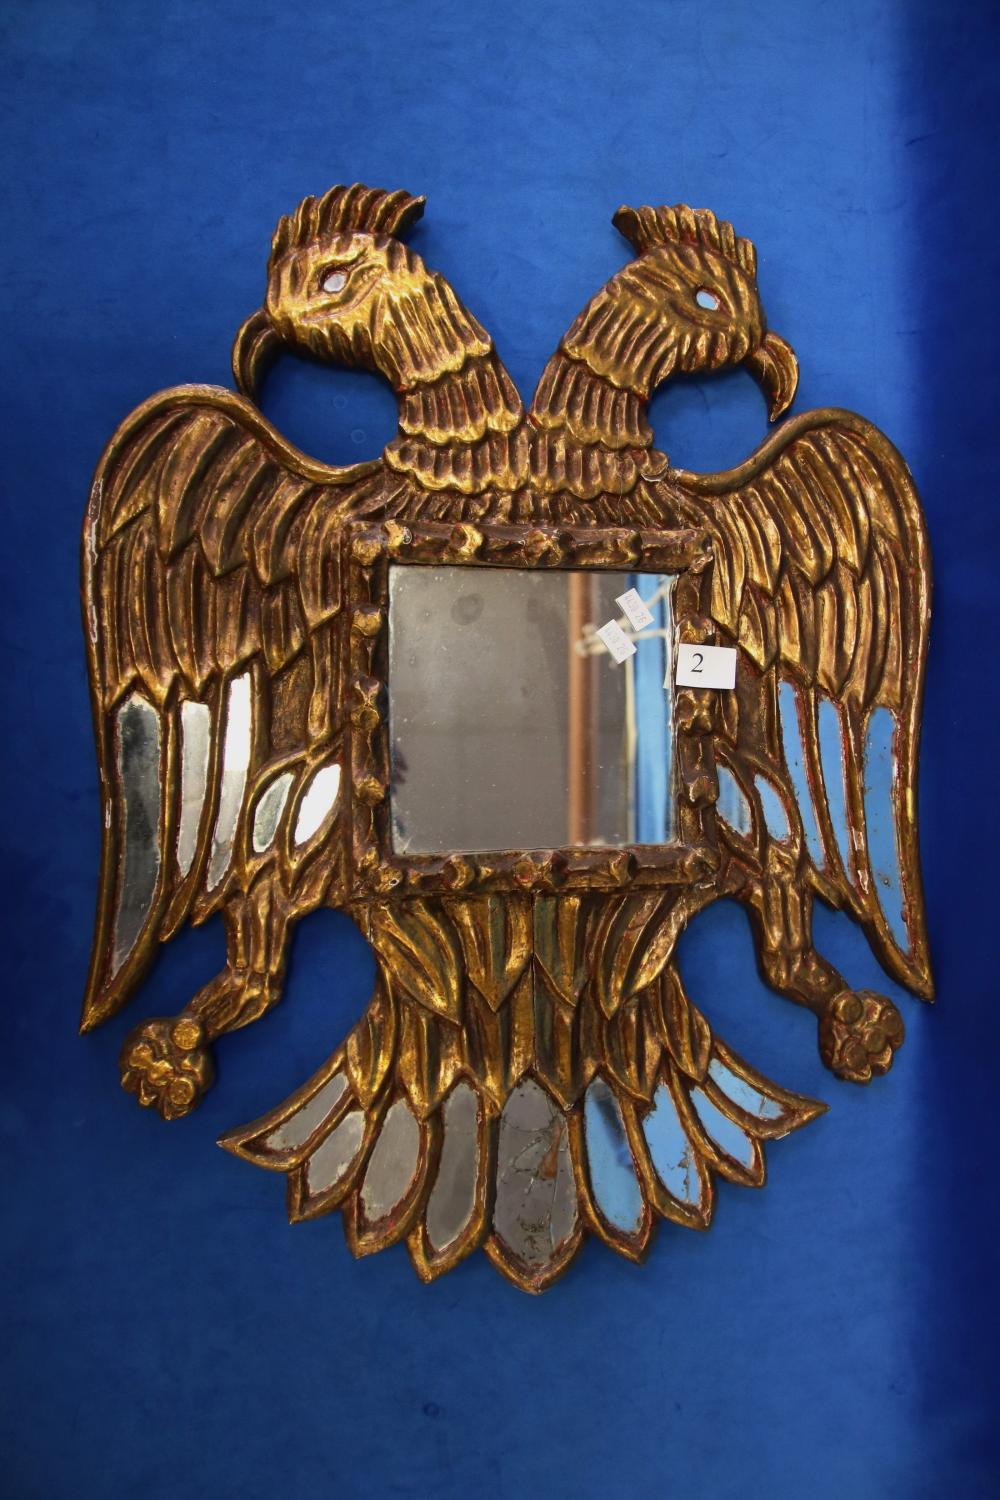 PERUVIAN CARVED GOLD AND MIRROR DOUBLE HEADED CONDOR MIRROR WITH FURTHER MIRROR INSERTS (MINOR DAMAGES TO MIRROR INSERTS)